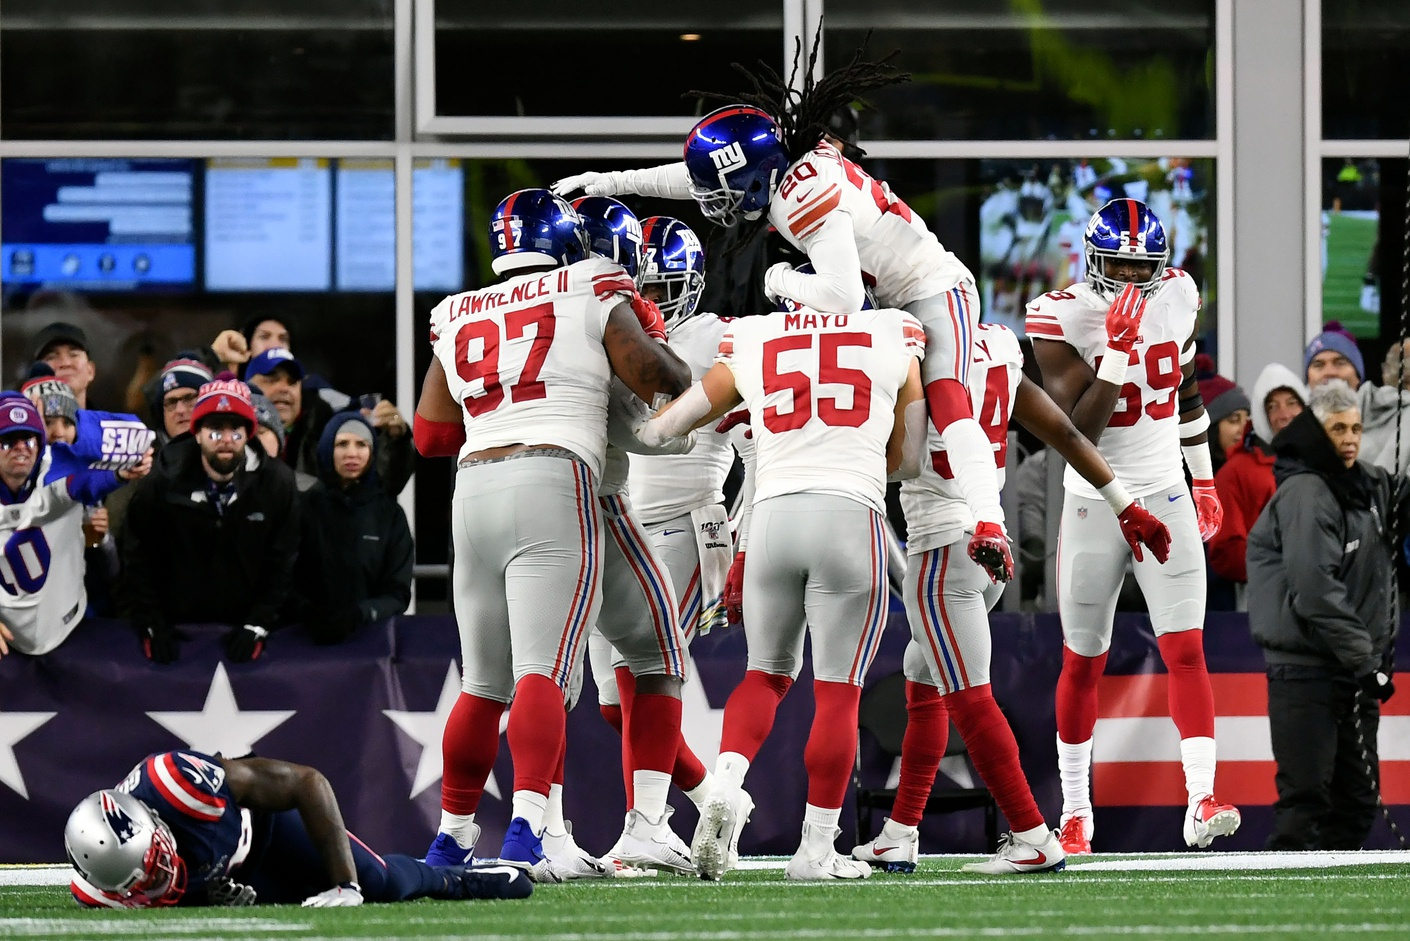 Takeaways from the Giants' 35-14 Loss to the Patriots